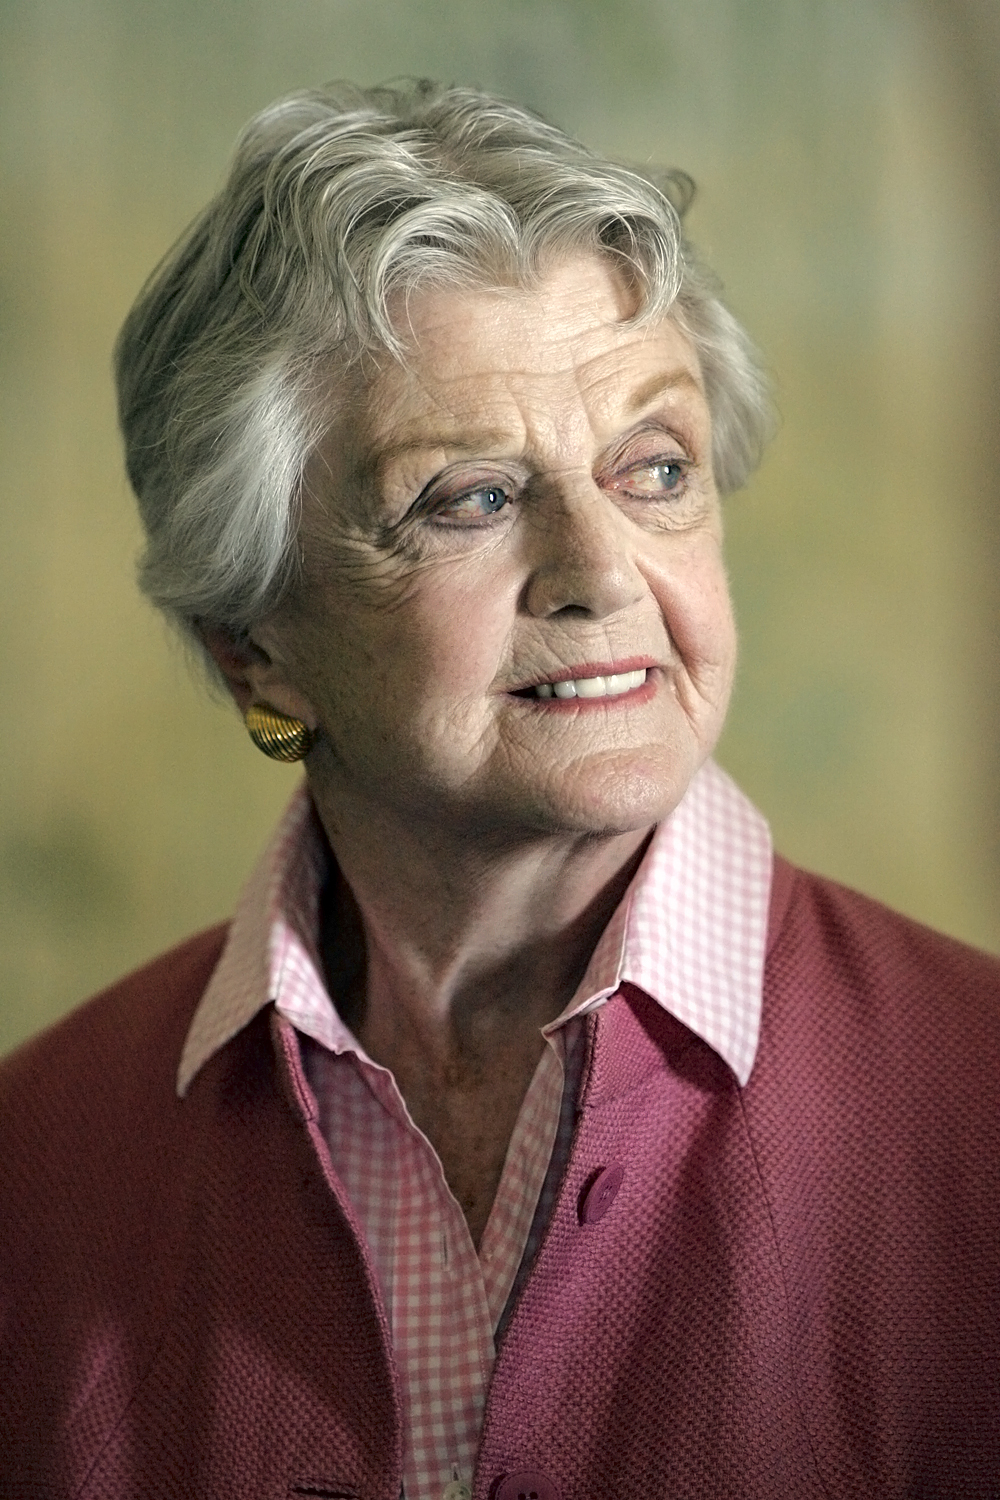 Angela Lansbury (born 1925 (naturalized American citizen) nude photos 2019